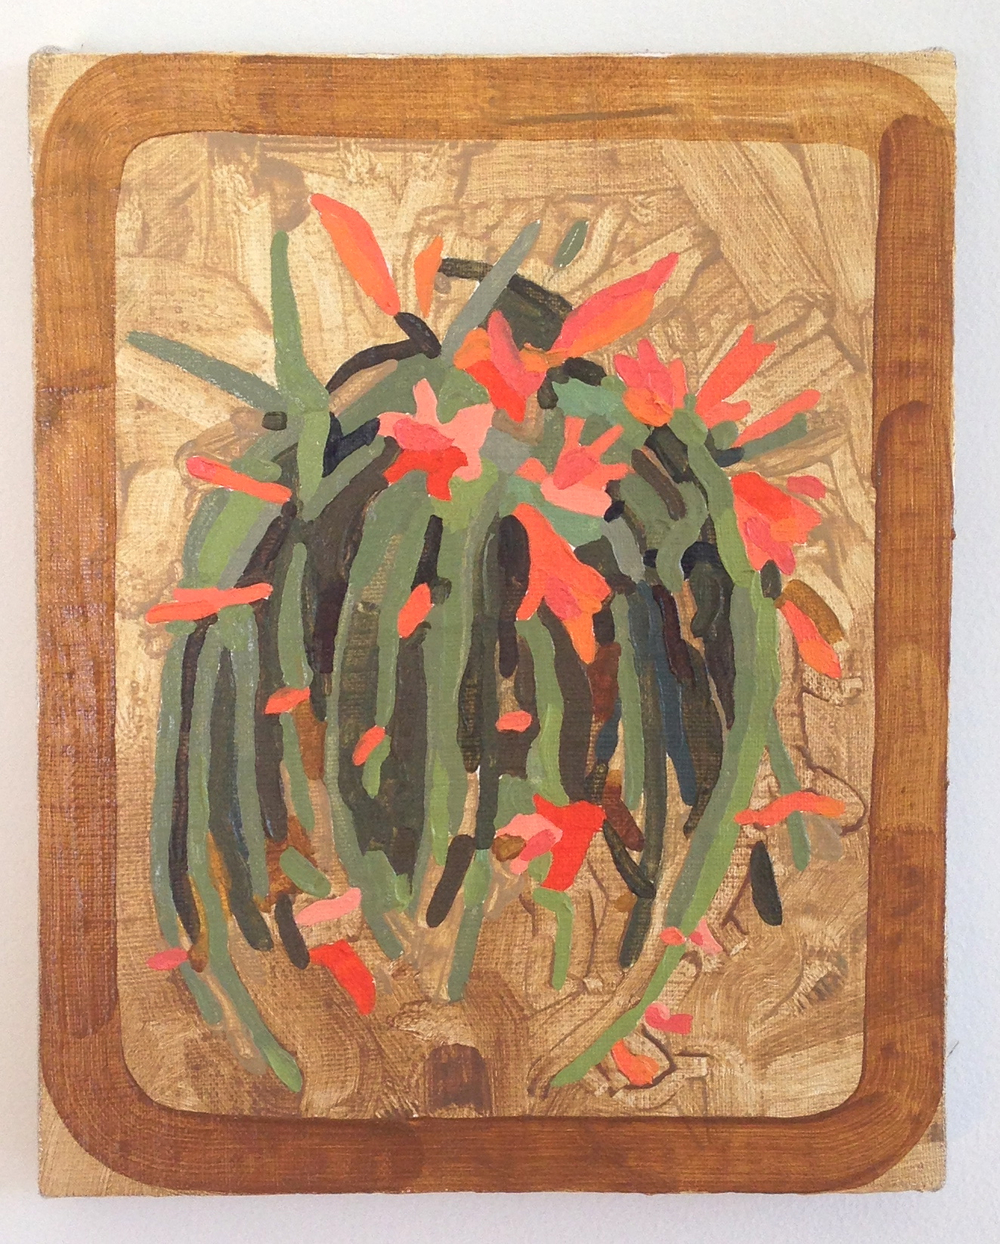 Greenhouse Epi (Firecracker)  10 x 8 inches  oil on khadi  2014